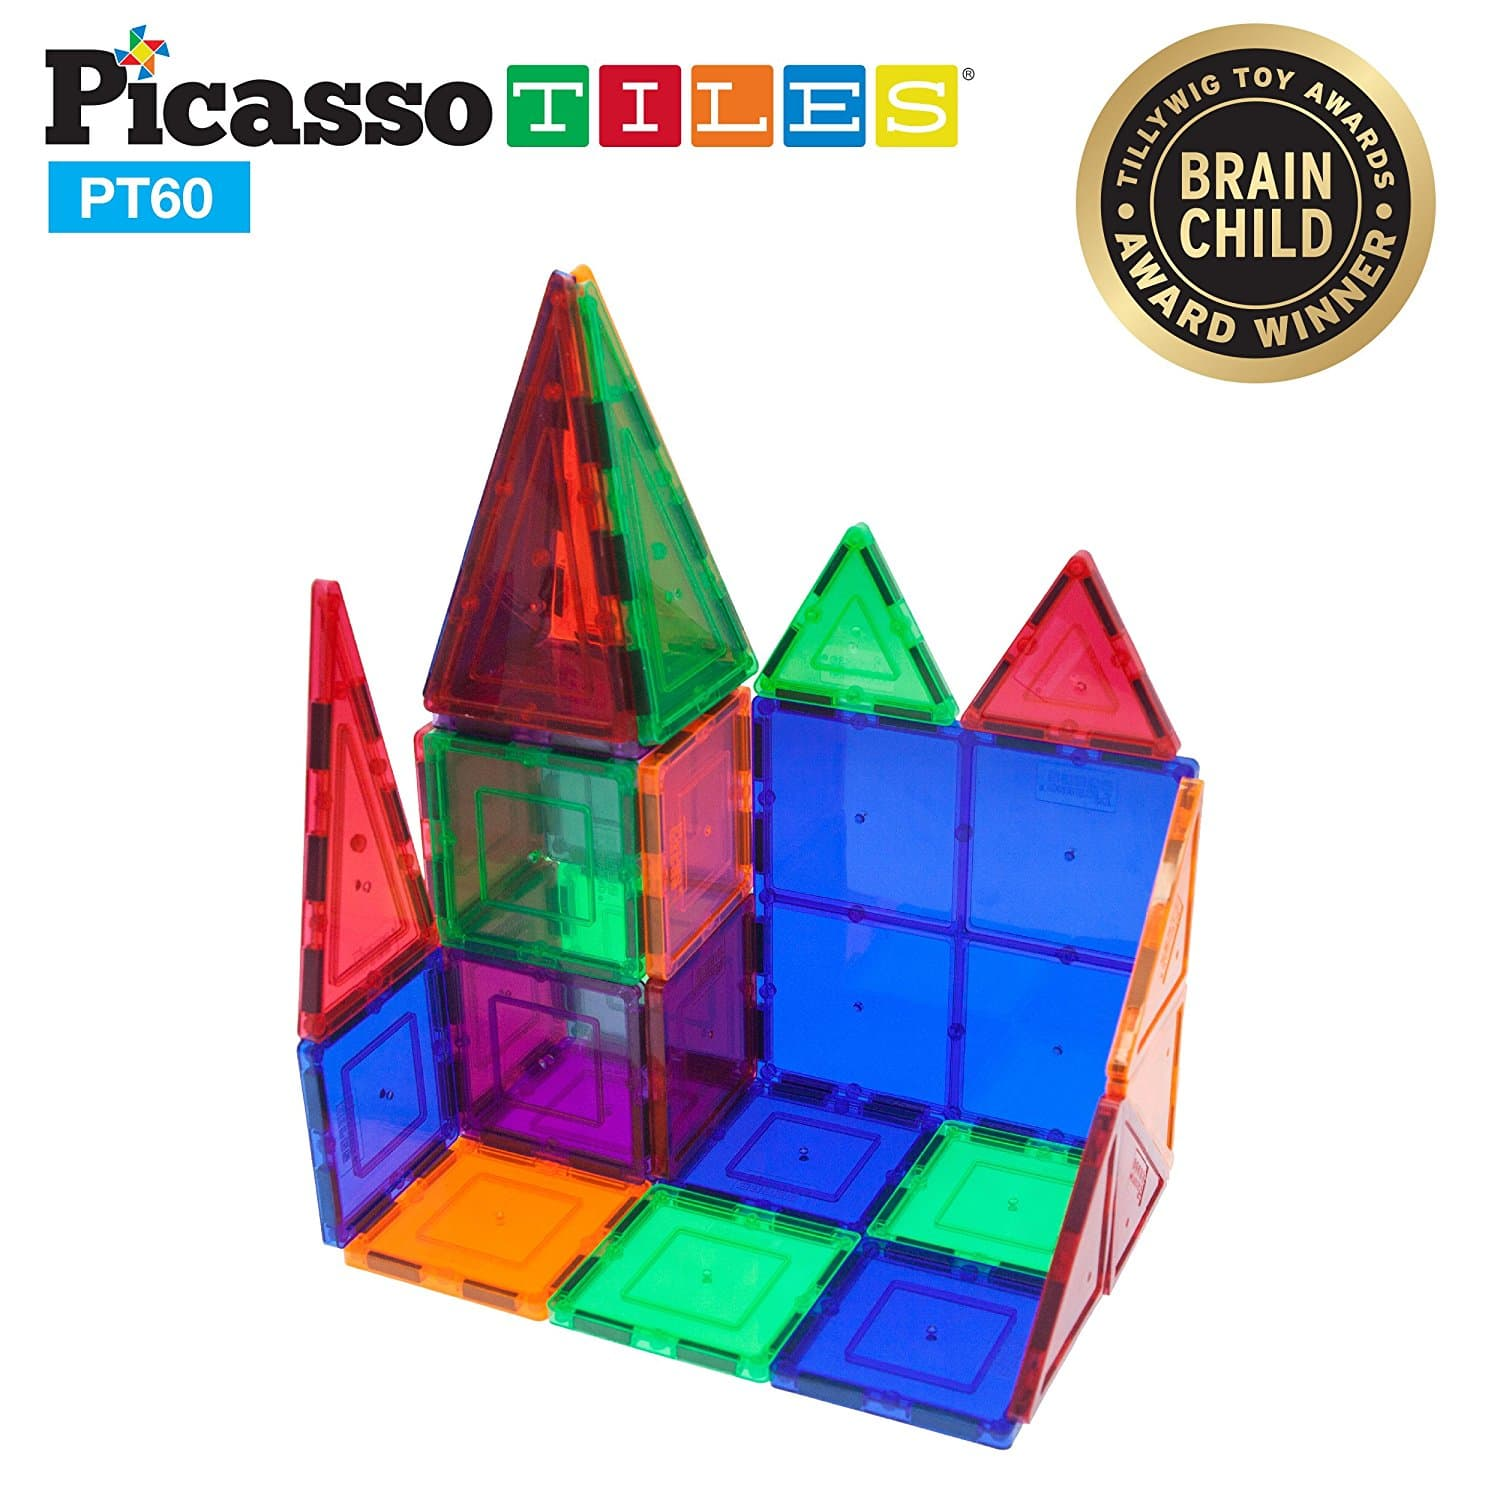 Picasso_Tiles